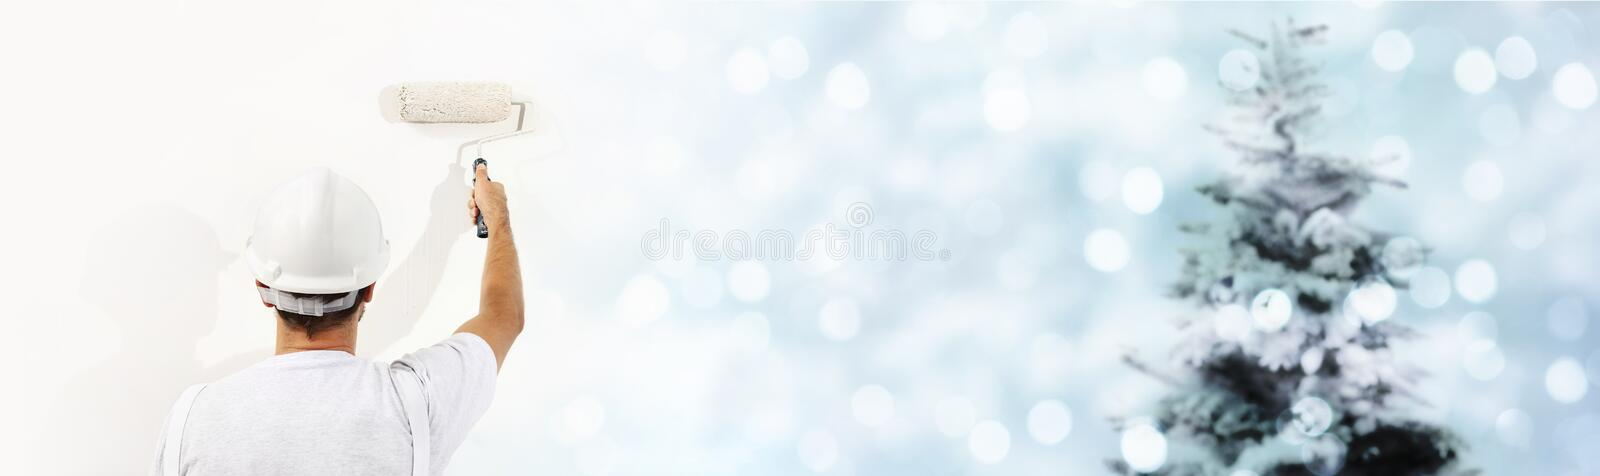 Wish a Merry Christmas concept, painter with roller painting a C royalty free stock image